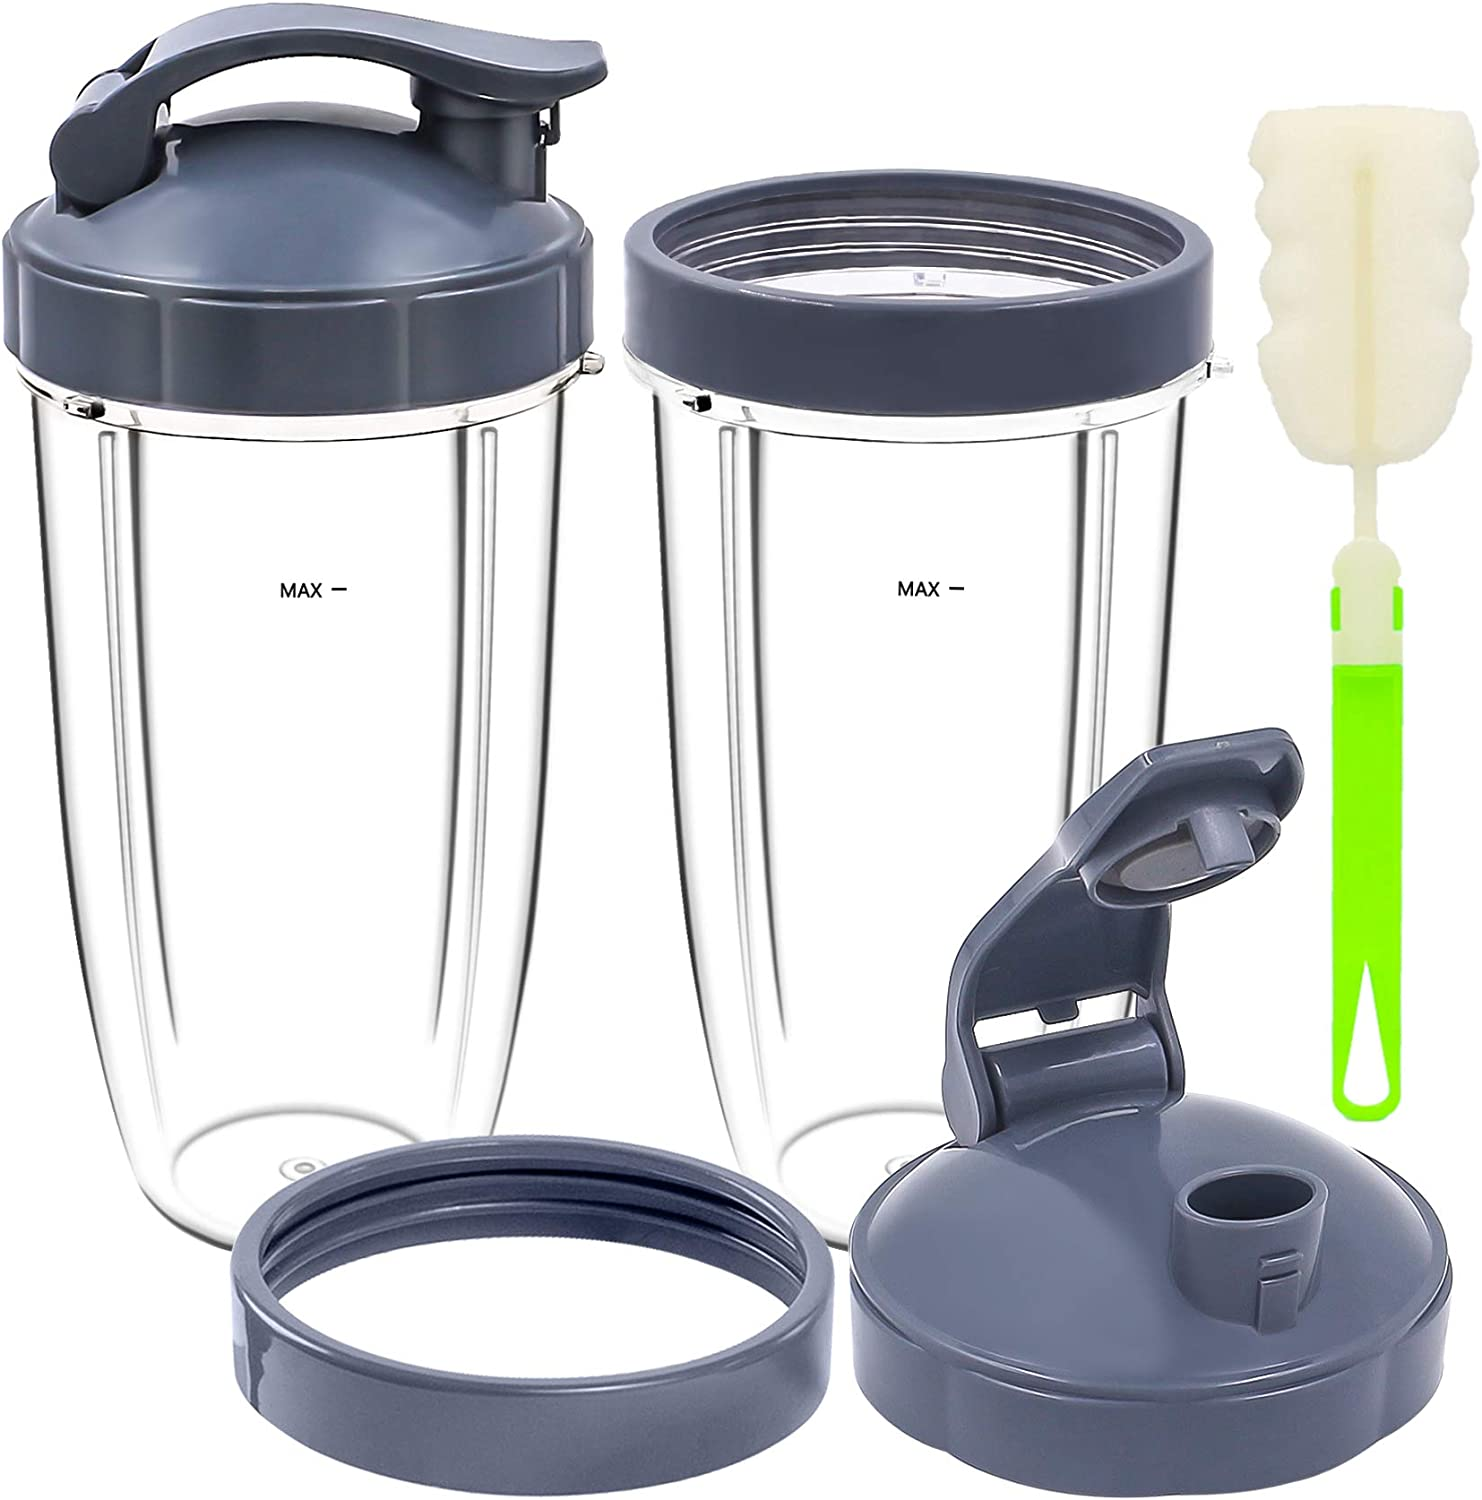 Tanzfrosch 2 Pack Replacement Parts 32oz Cups with Flip Top Lids & Lip Rings Compatible with Nutribullet 600W/900W Blender Models